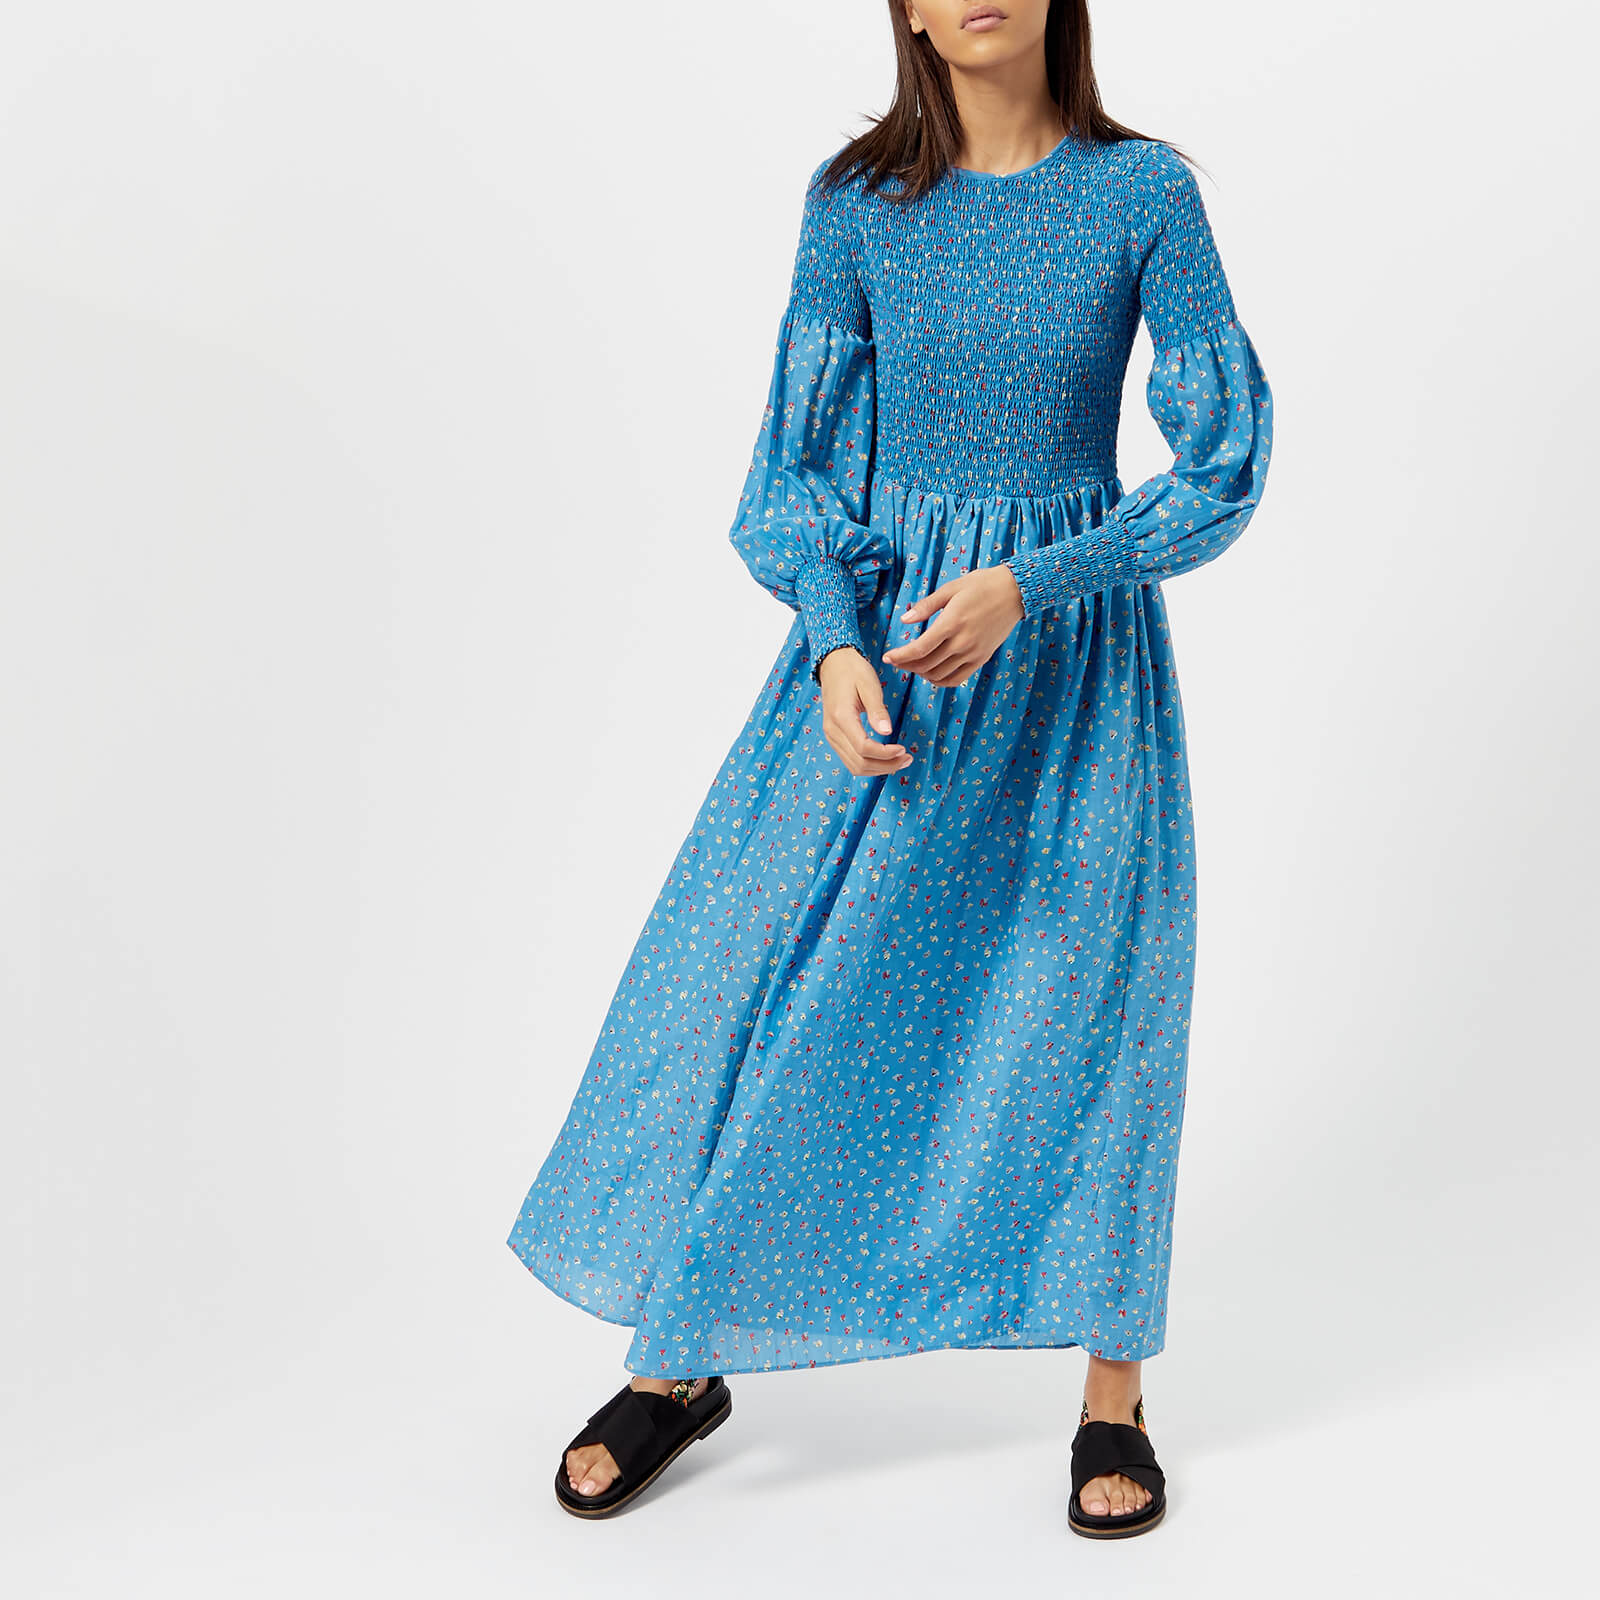 1f3af6128d2 Ganni Women s Beacon Long Sleeve Dress - Marina - Free UK Delivery over £50